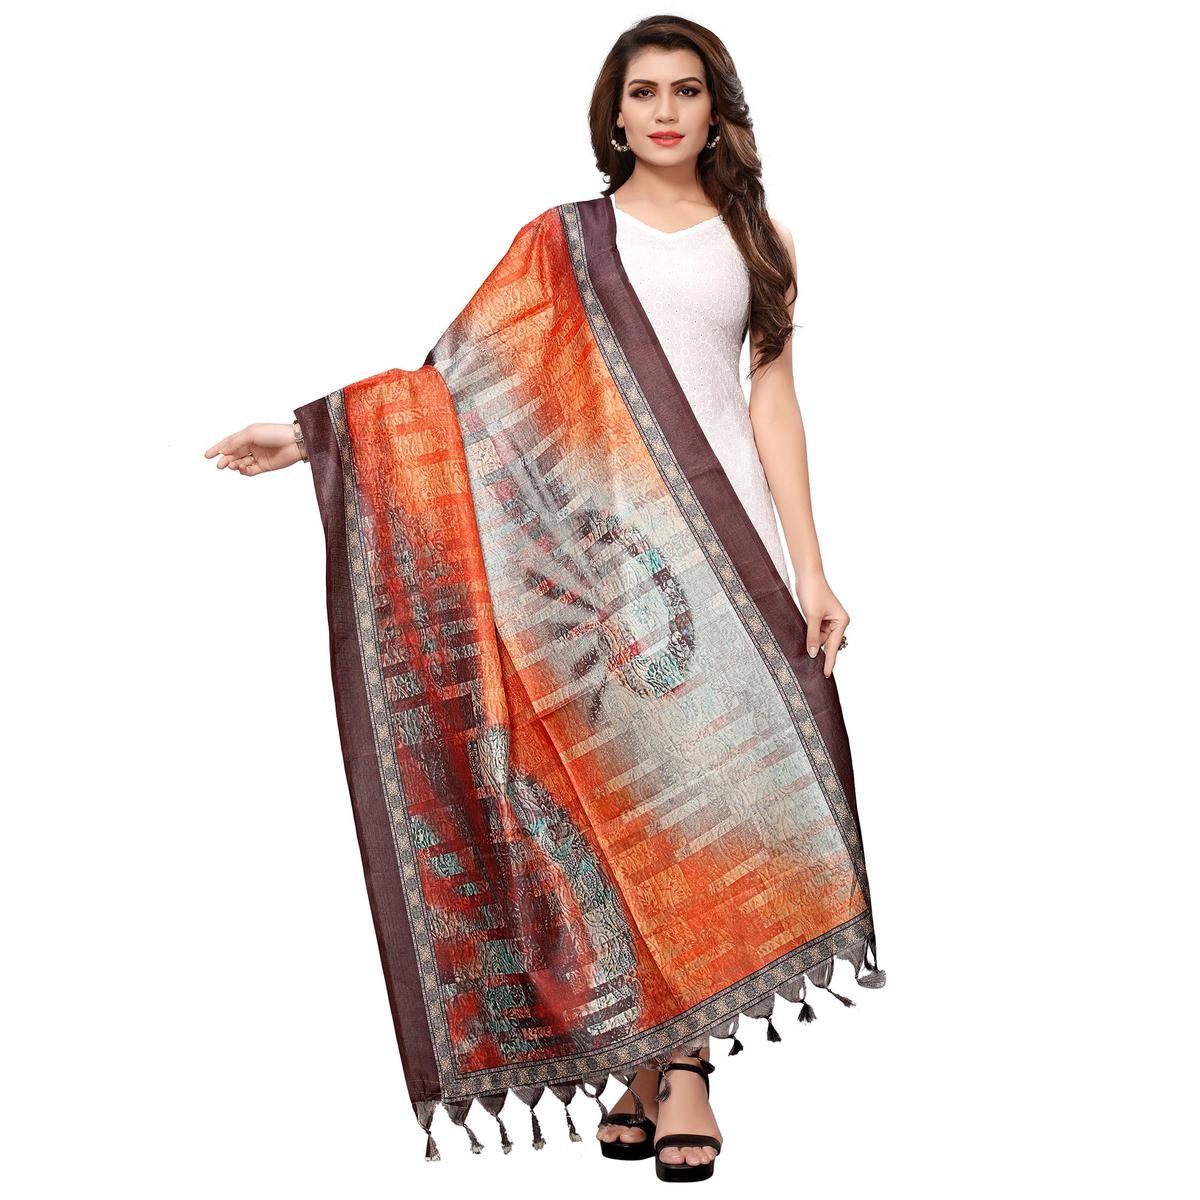 Blissful Orange-Brown Colored Casual Wear Digital Printed Khadi Silk Dupatta